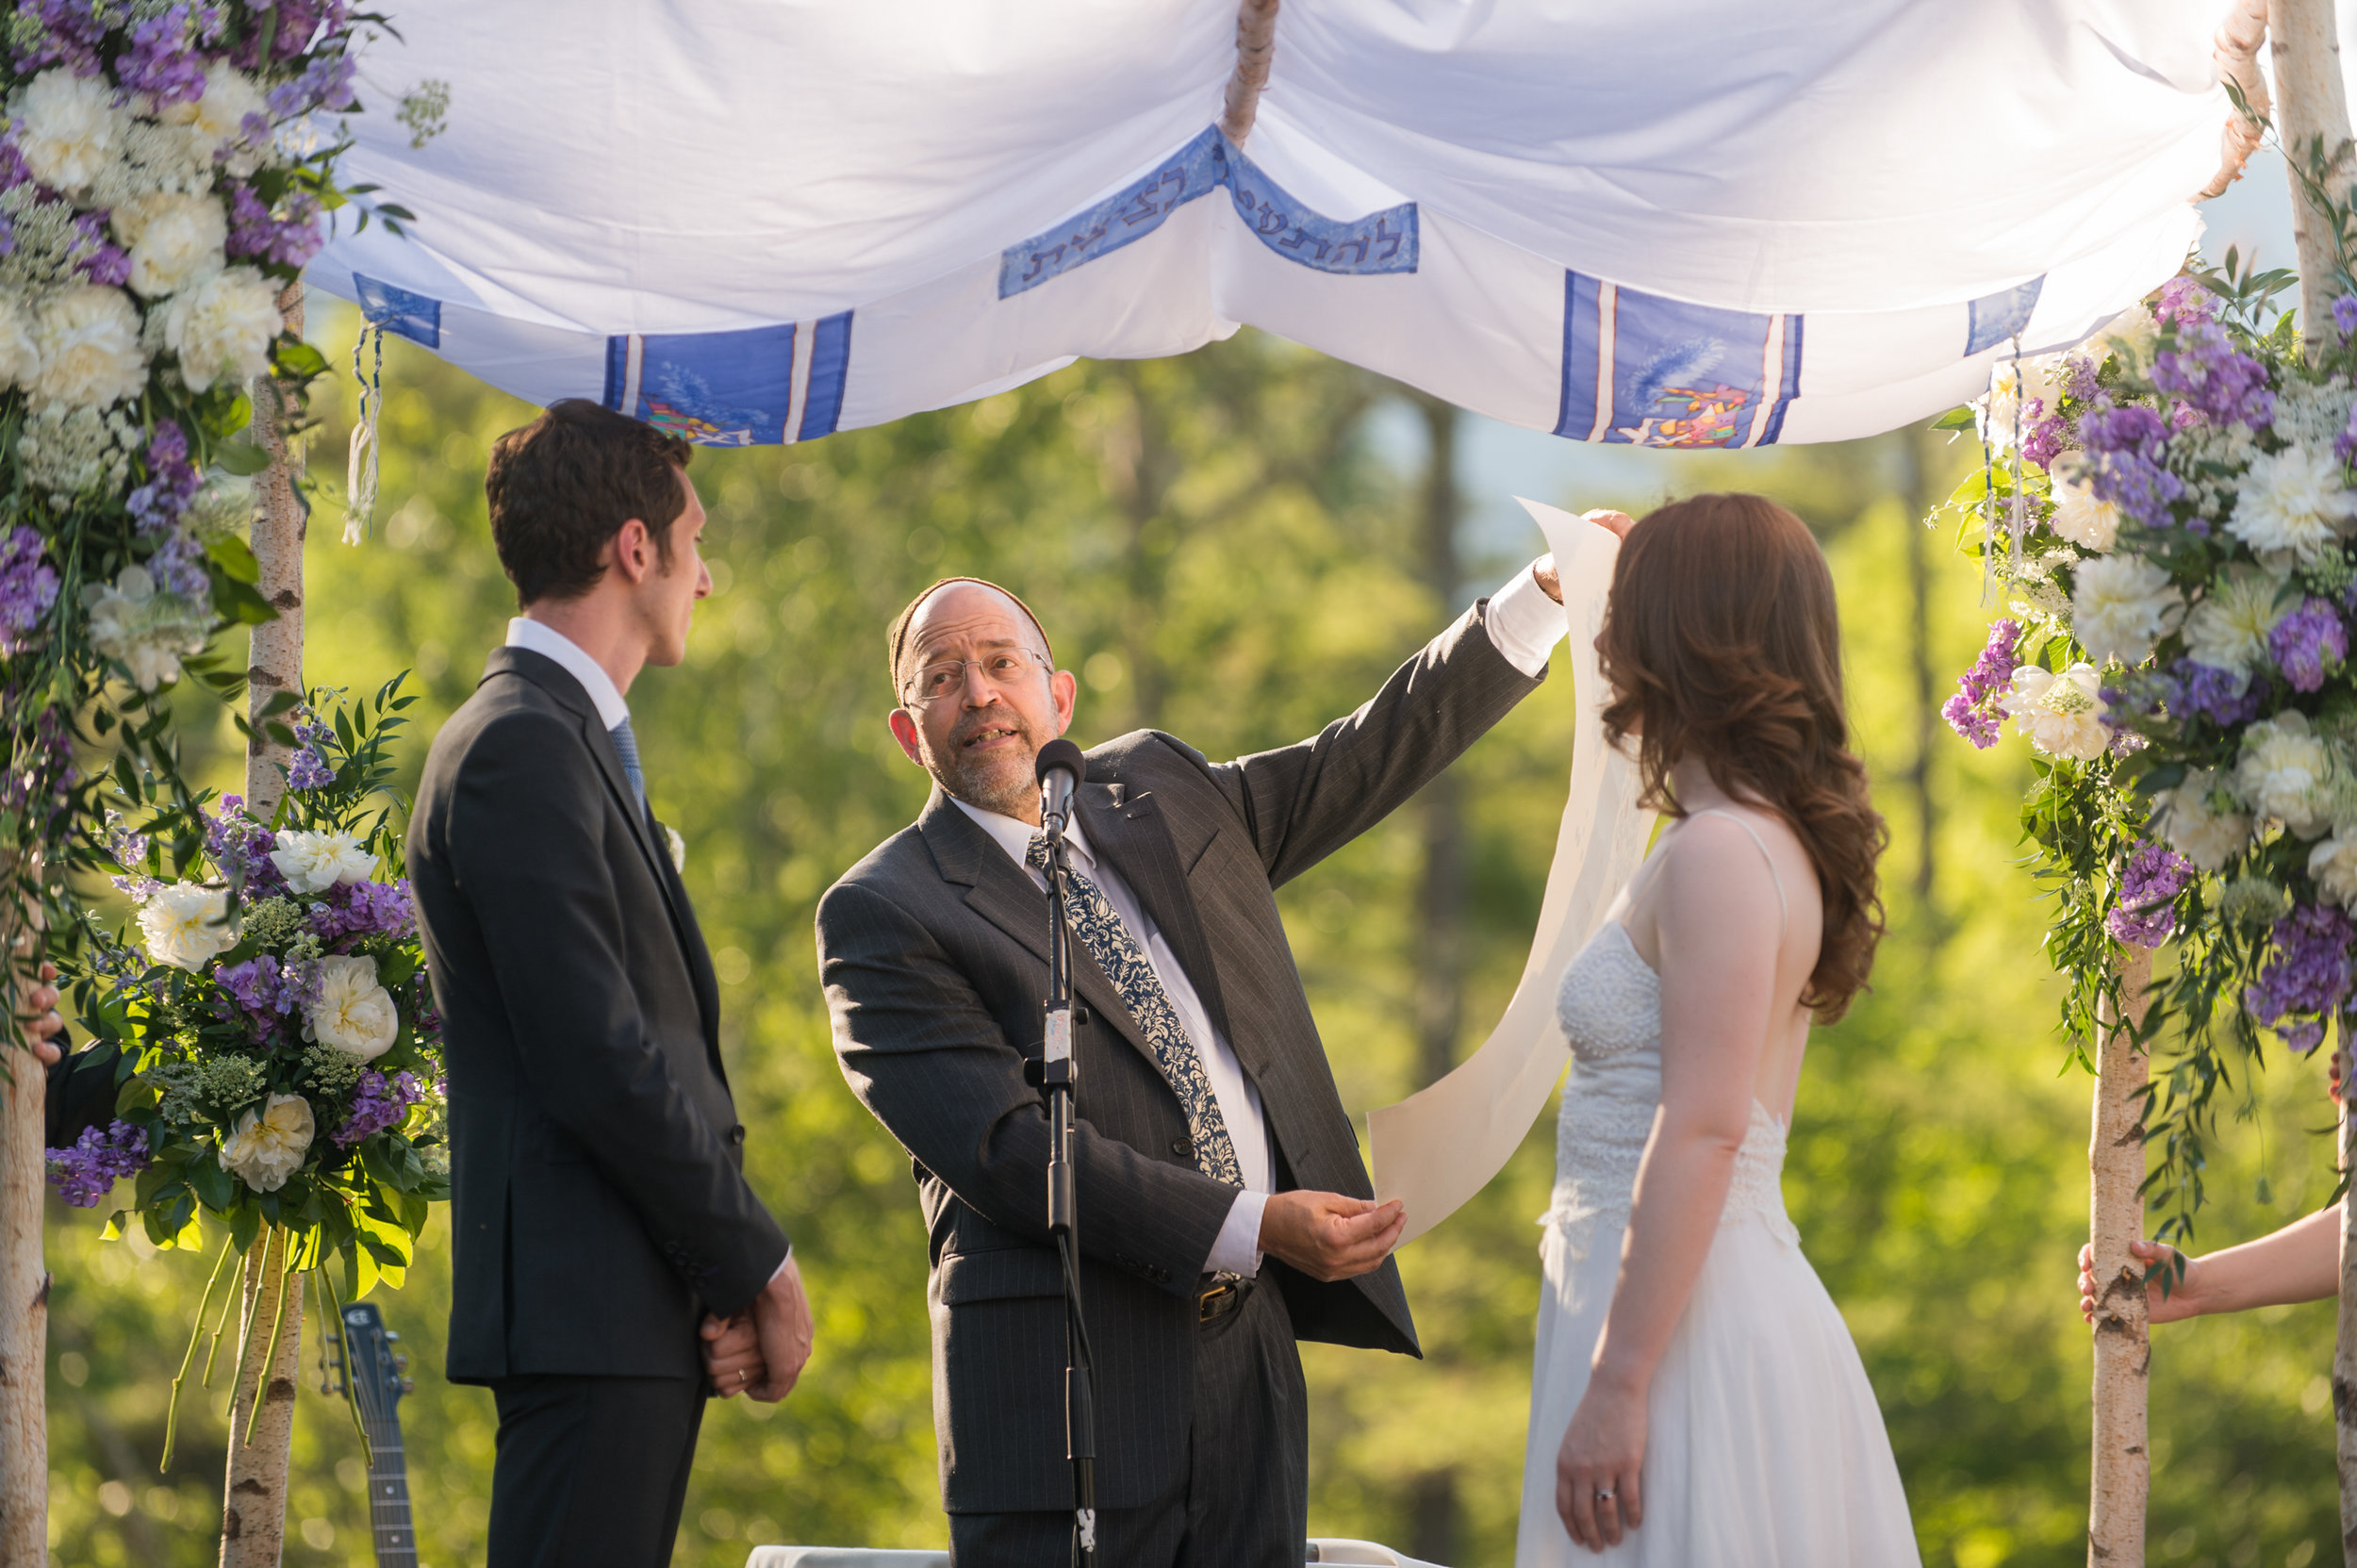 Stefy Hilmer Photography- reading the thora at a jewish ceremony at opus 40.jpg